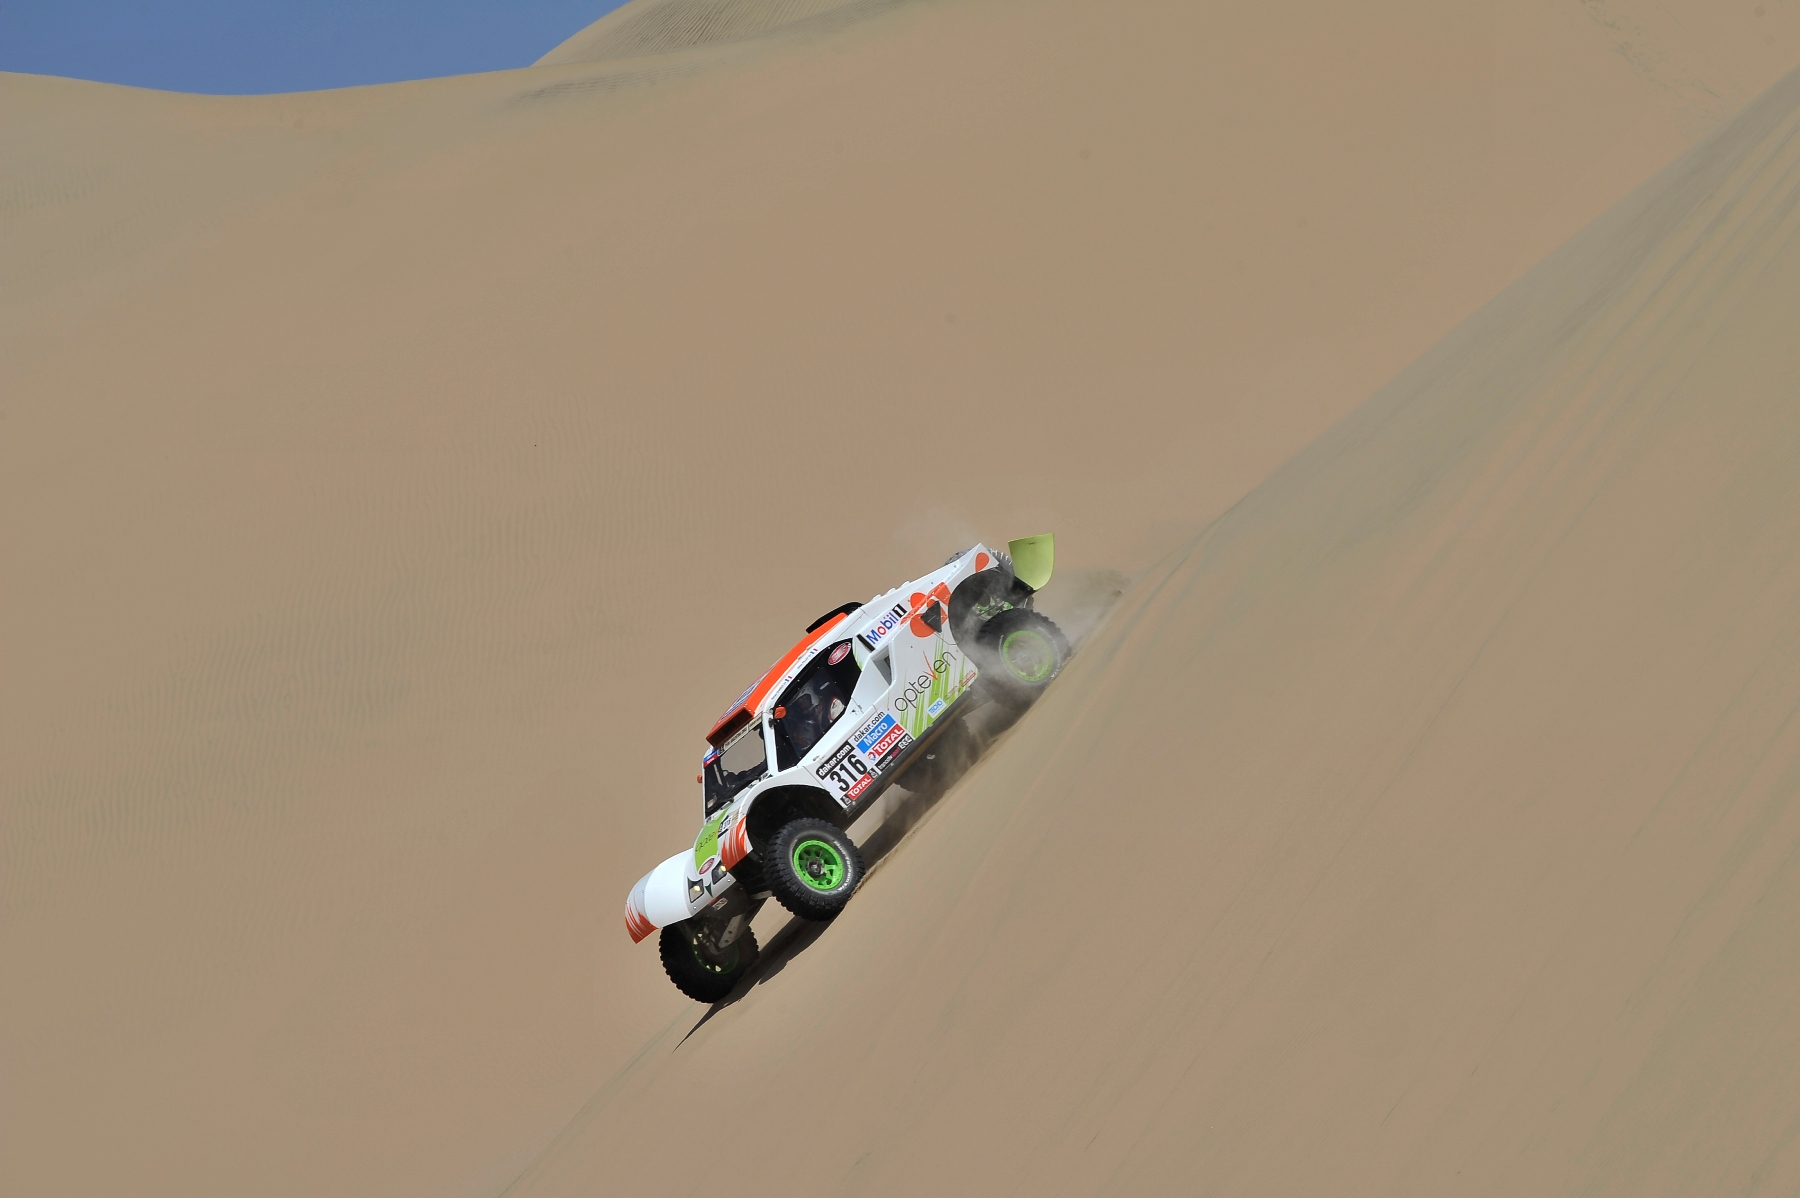 MOTORSPORT - DAKAR PERU CHILE ARGENTINA  2013 - STAGE 3 / ETAPE 3 - PISCO  (PER) TO NAZCA (PER) - 07/01/2013 - PHOTO : DPPI -